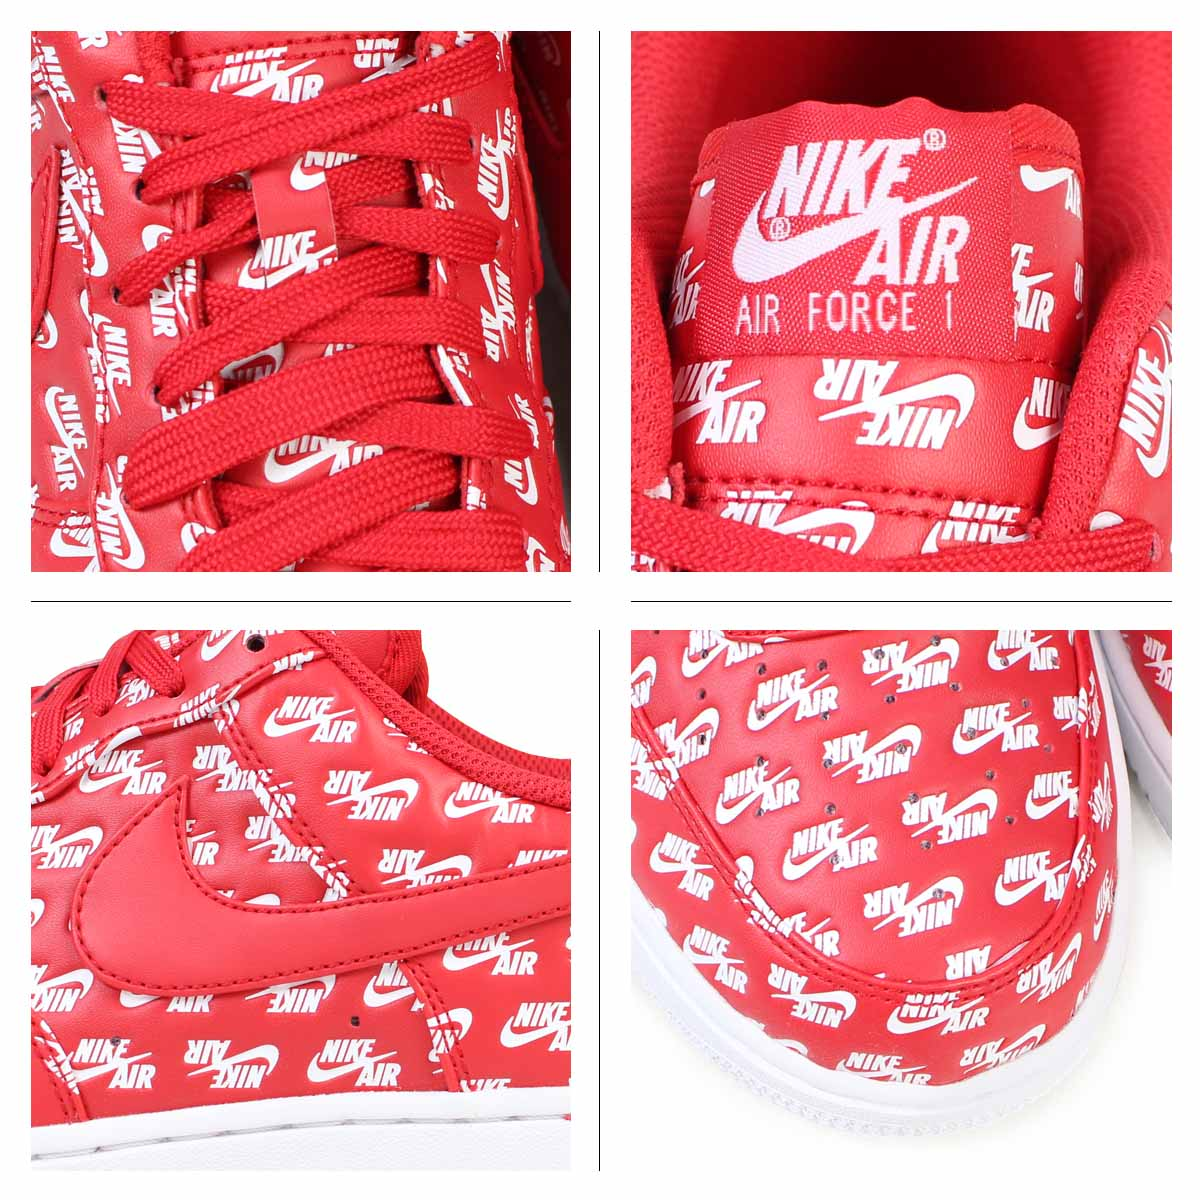 711f9b05c9e67e NIKE AIR FORCE 1 ALL OVER LOGO Nike air force 1 07 QS sneakers AH8462-600  men shoes red  load planned Shinnyu load in reservation product 9 29  containing